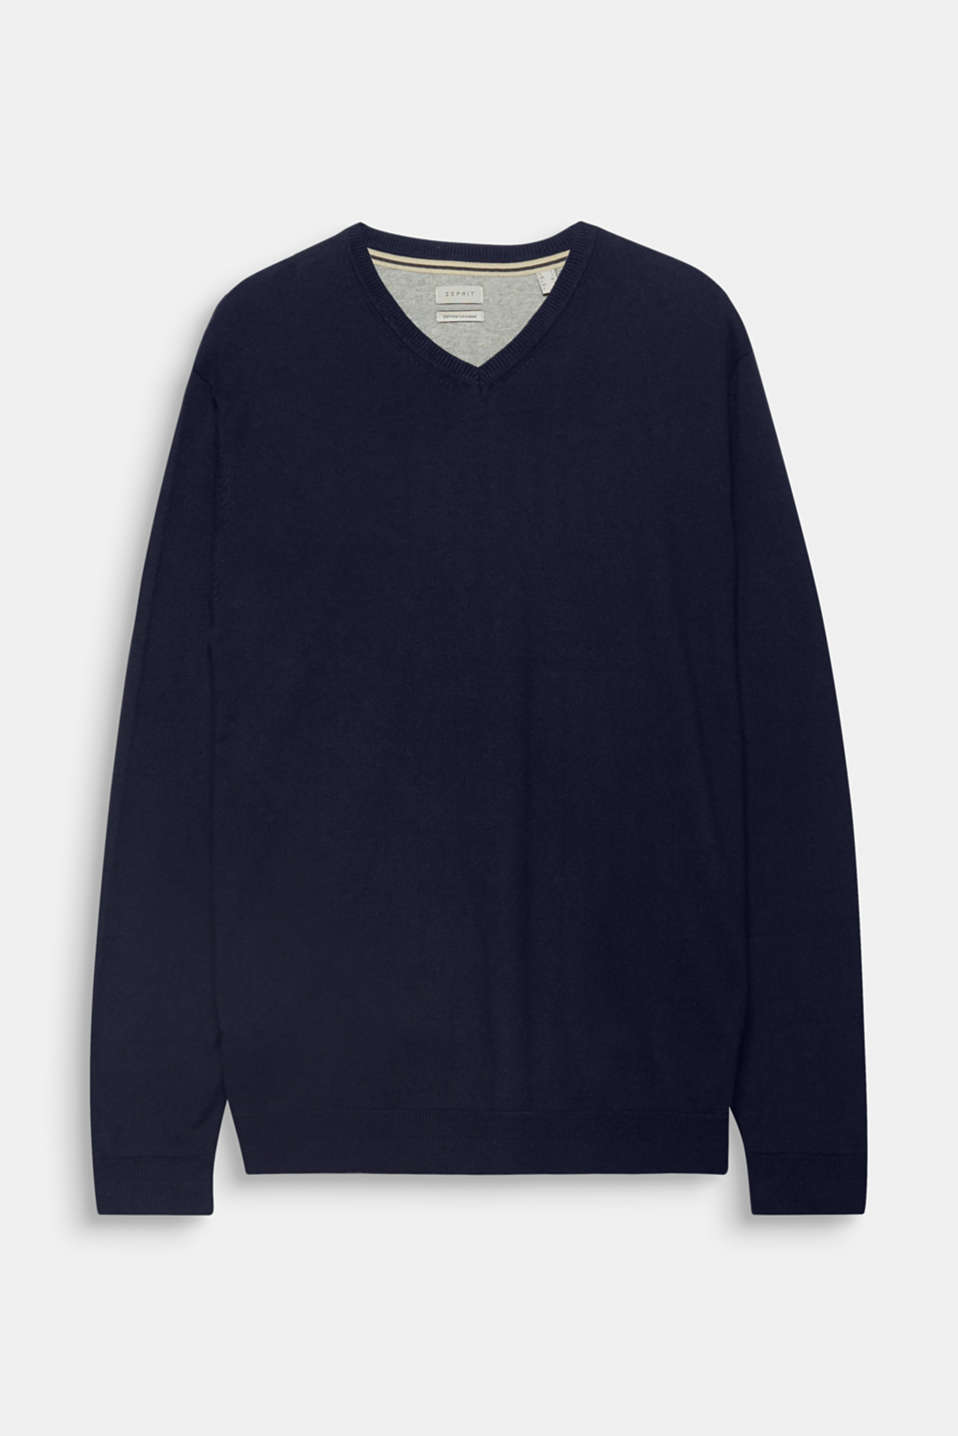 This V-neck cotton jumper containing exquisite cashmere is an essential, elegant addition to your wardrobe.